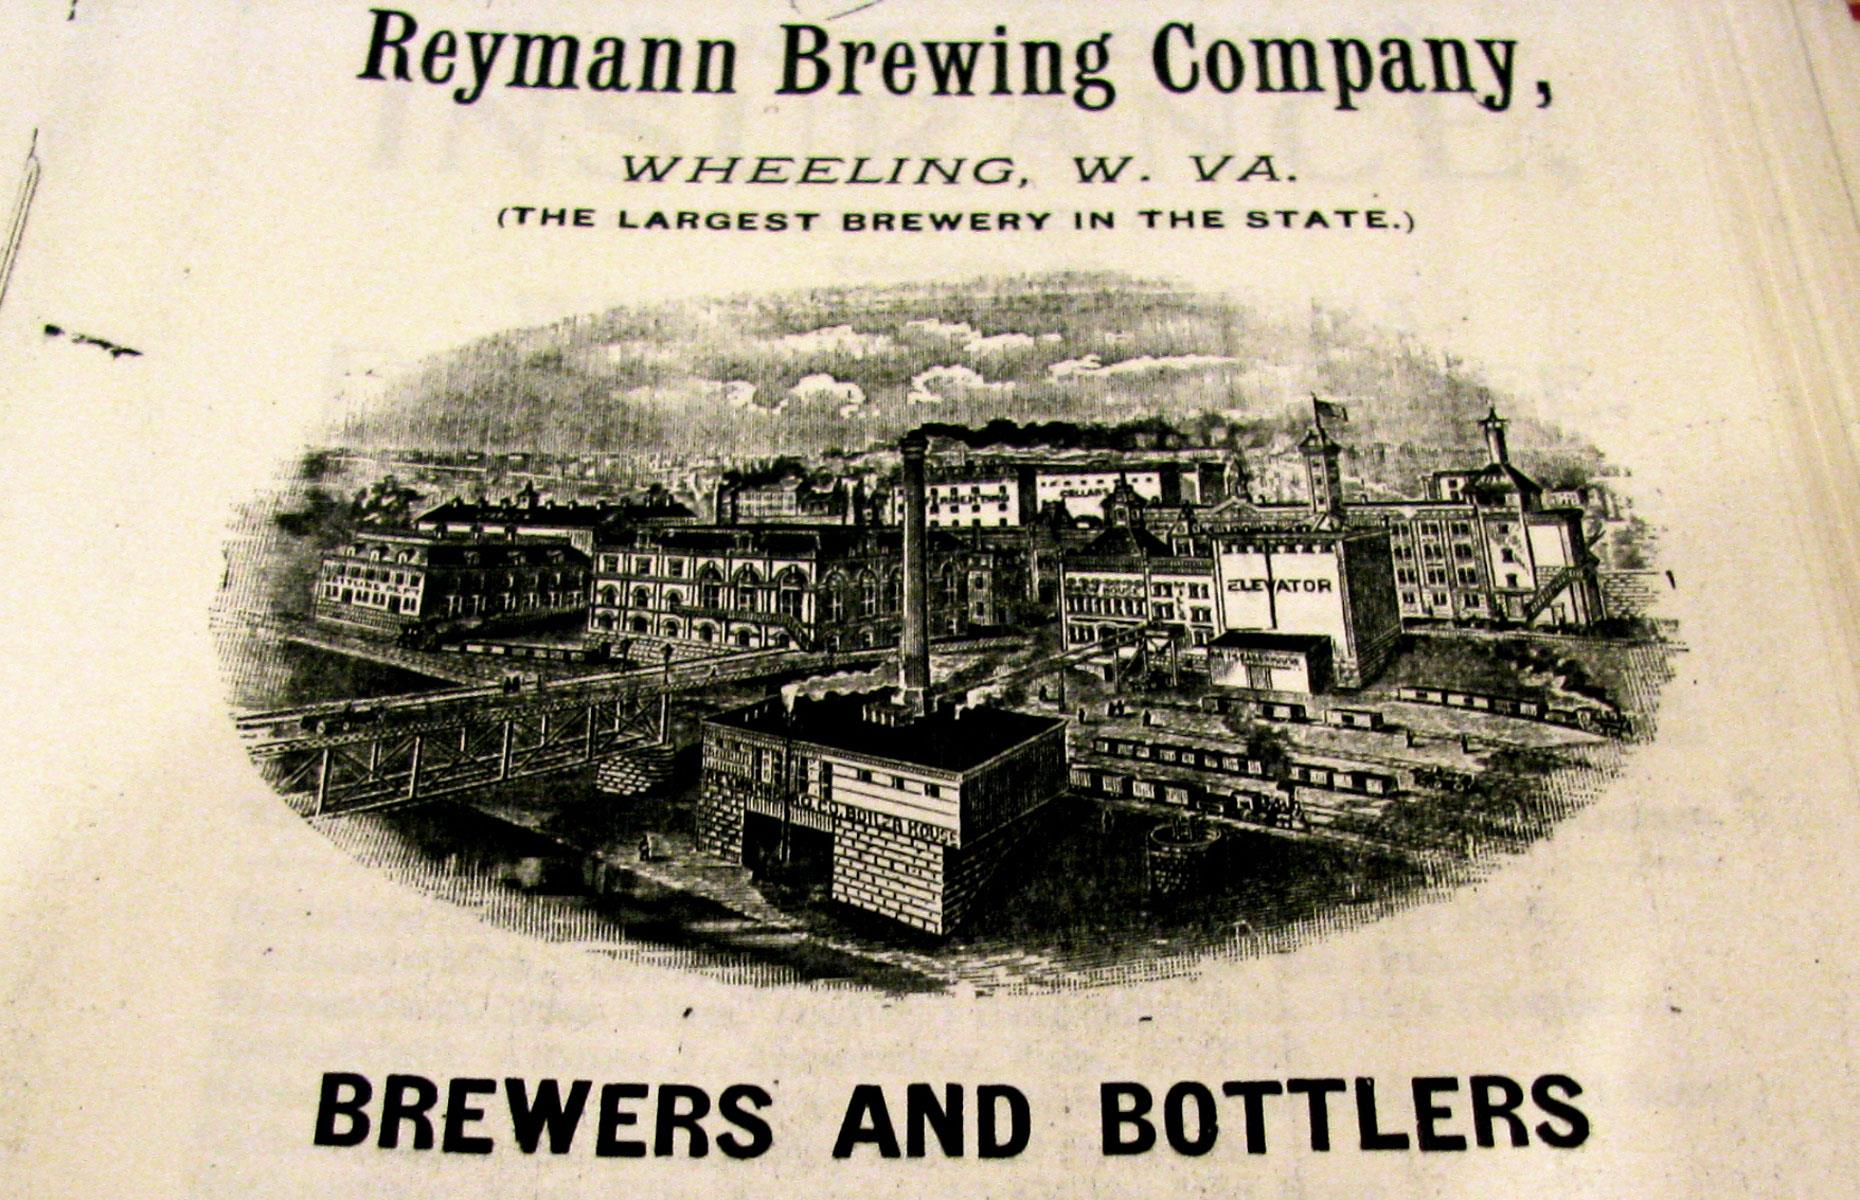 Slide 97 of 101: Despite its booming business, the brewery was forced to close in 1914 when Prohibition legislation was passed in the state. It was reportedly used as an air raid shelter during World War II, but has remained vacant ever since.